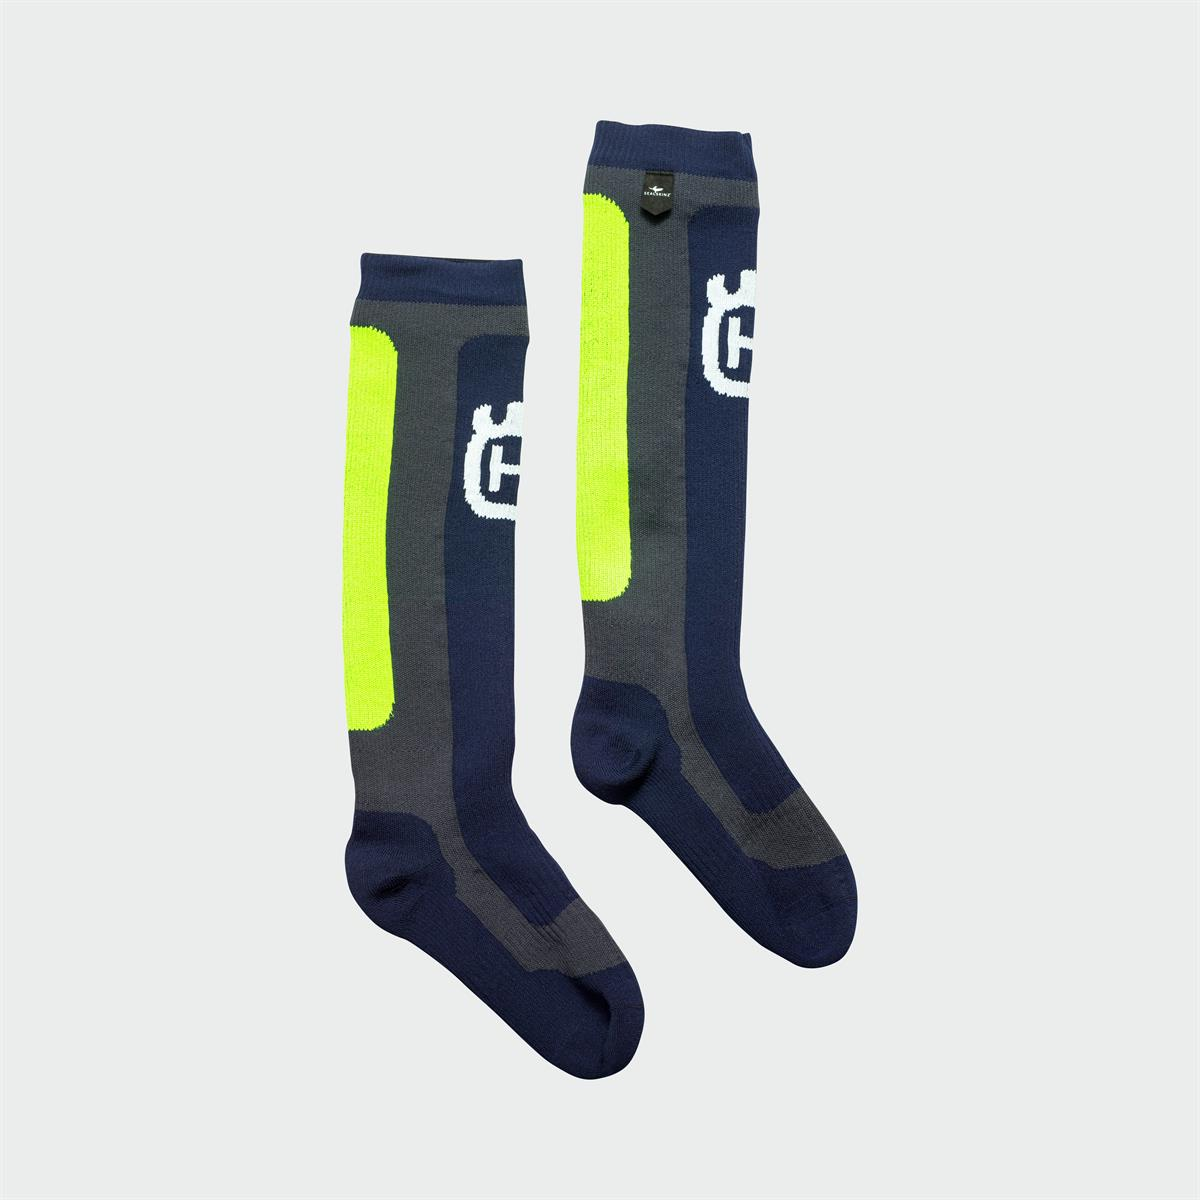 Husqvarna Functional Clothing - FUNCTIONAL WATERPROOF SOCKS